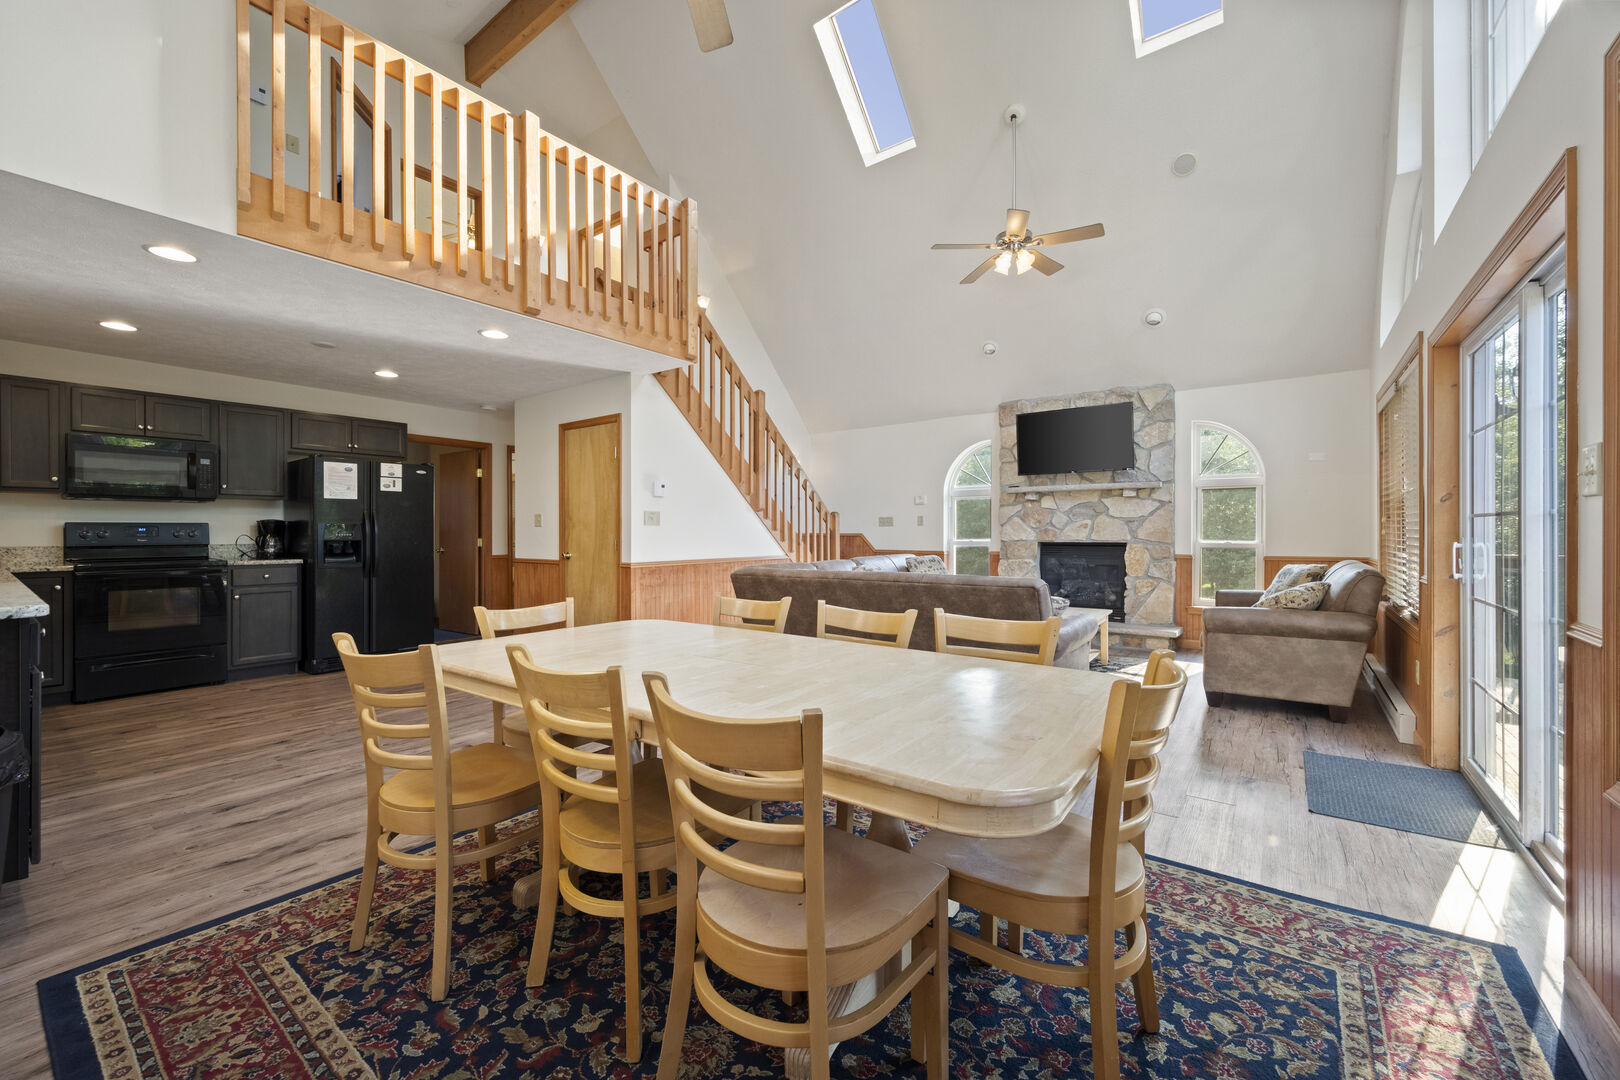 Dining room area with nearby staircase